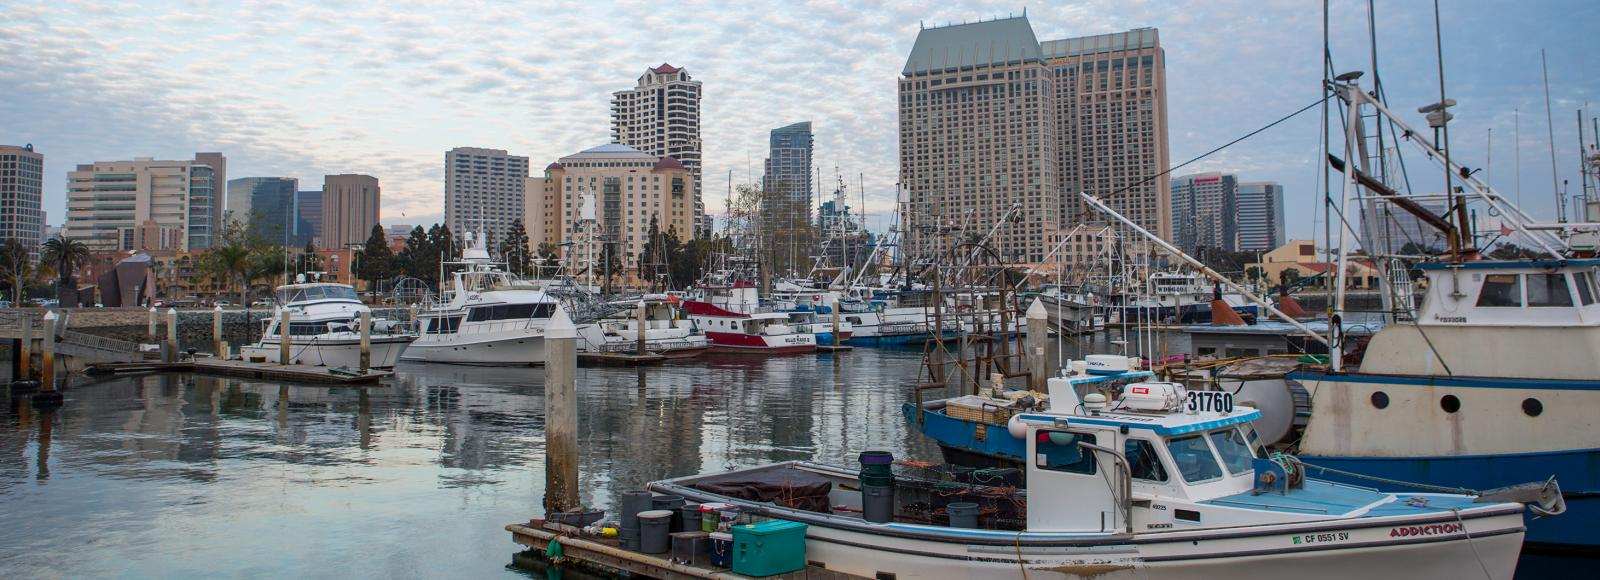 A marina with a dozen boats docked and a cityscape behind it. The blue sky is blanketed with cirrocumulus clouds.